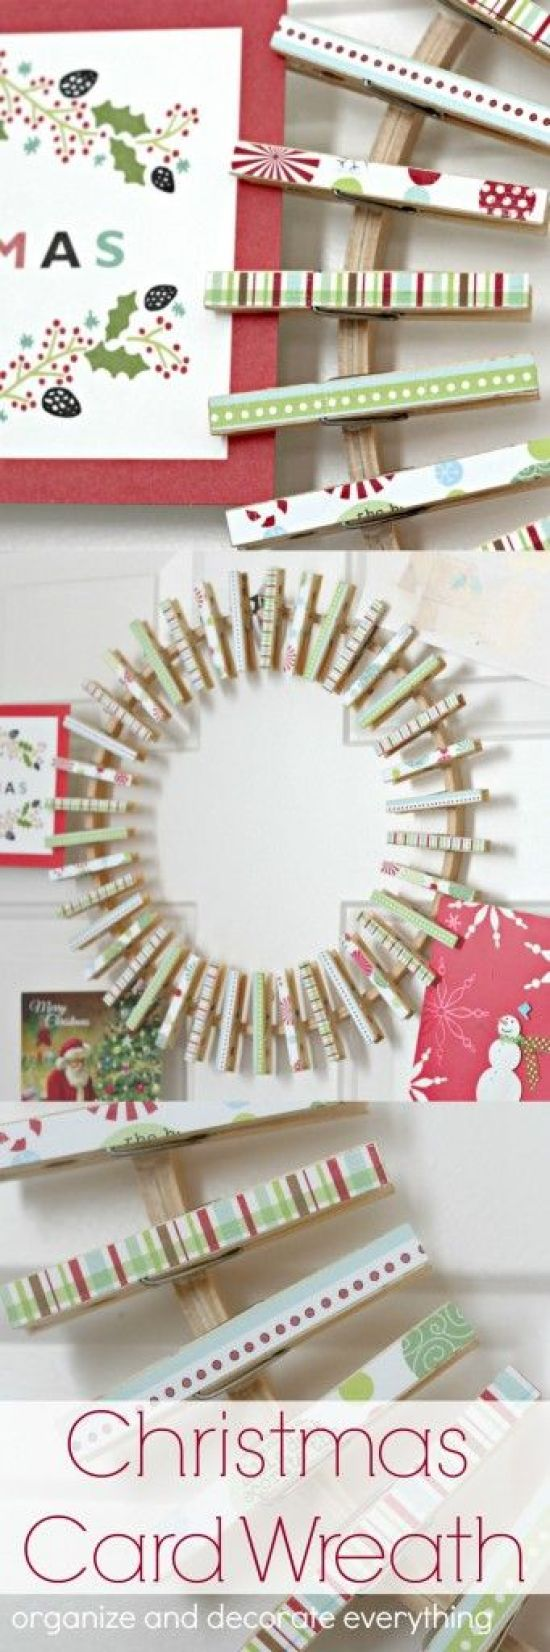 Make this fun and easy clothespin Christmas Card Wreath to hold and display all your Christmas cards this season! DIY Christmas Card Clothespin Wreath Tutorial | Organize & Decorate Everything